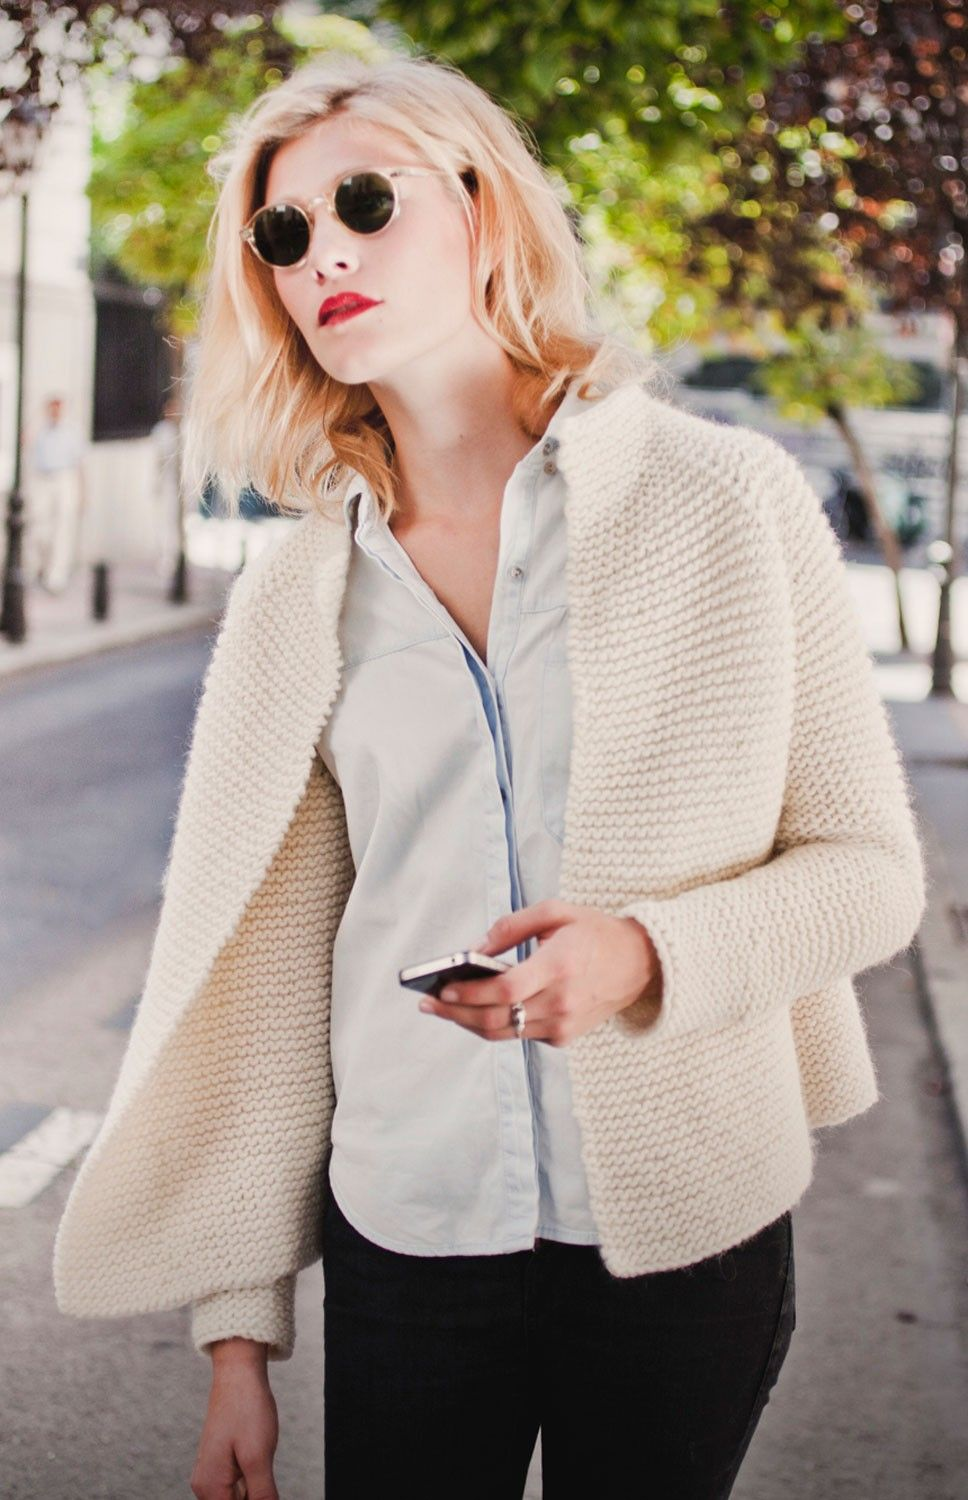 Martina Cardigan - Buy Wool, Needles & Yarn Chaquetas - Buy Wool ...